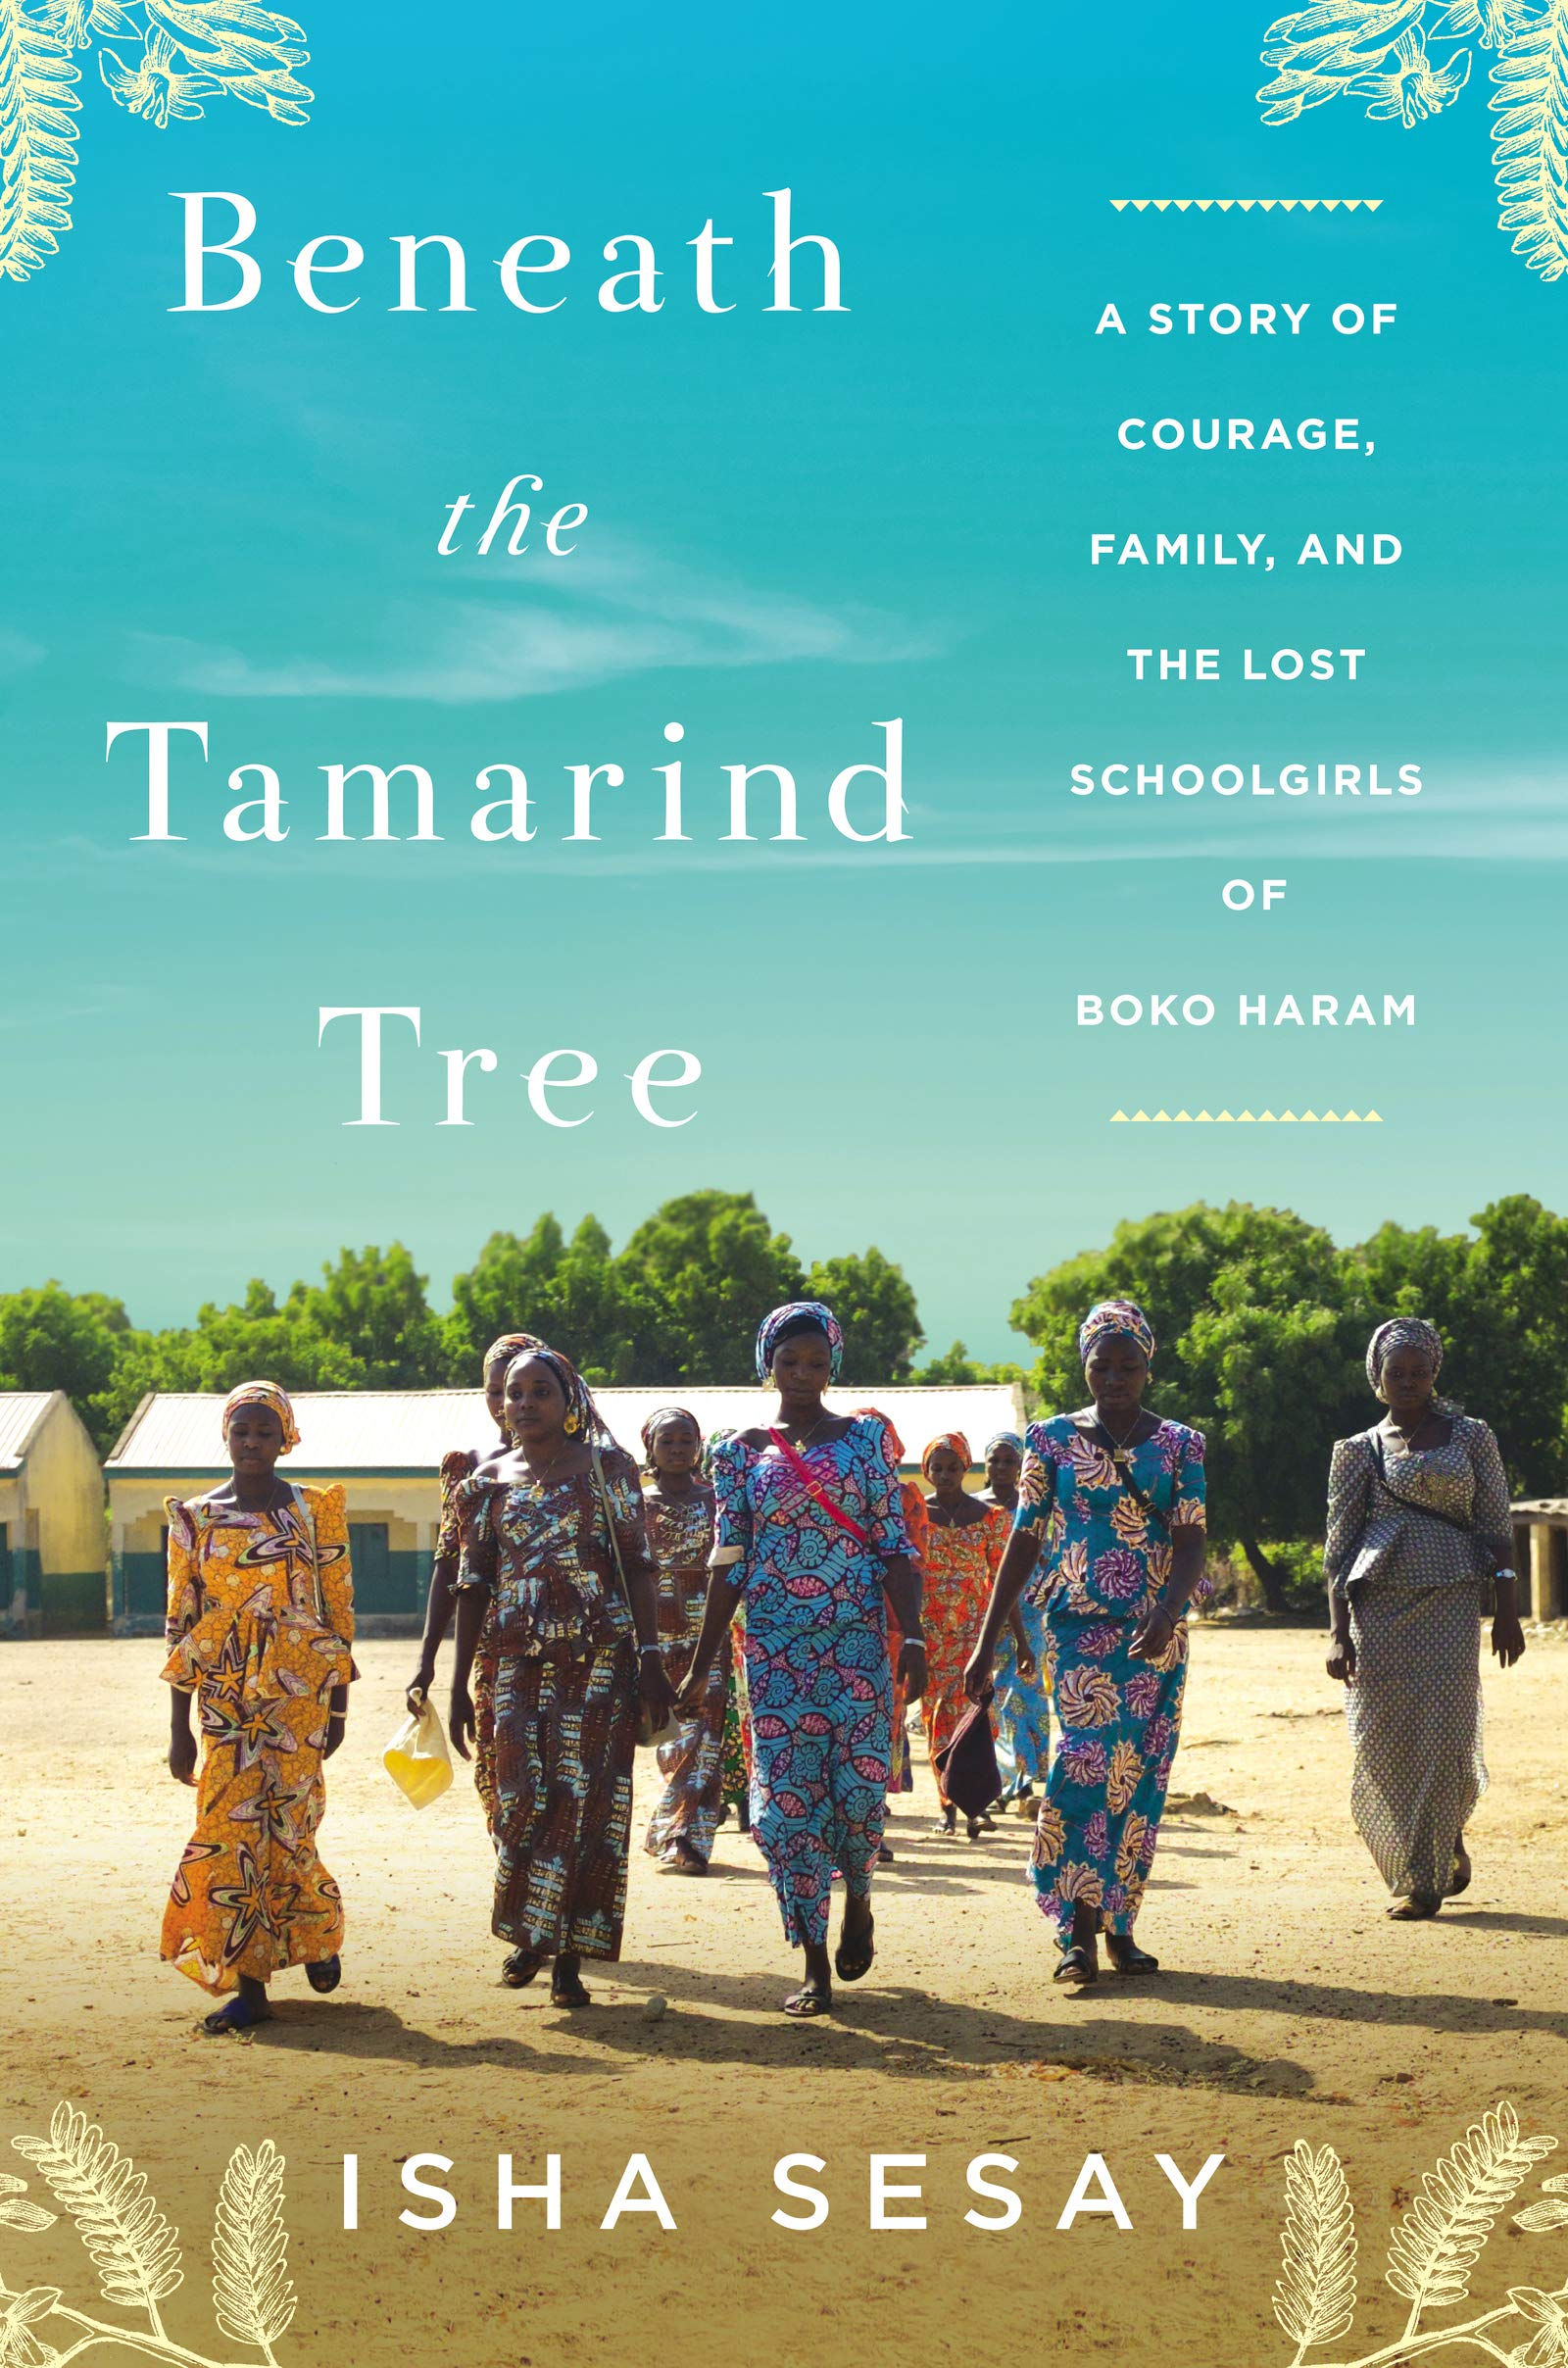 Beneath the Tamarind Tree: A Story of Courage, Family, and the Lost Schoolgirls of Boko Haram by Dey Street Books